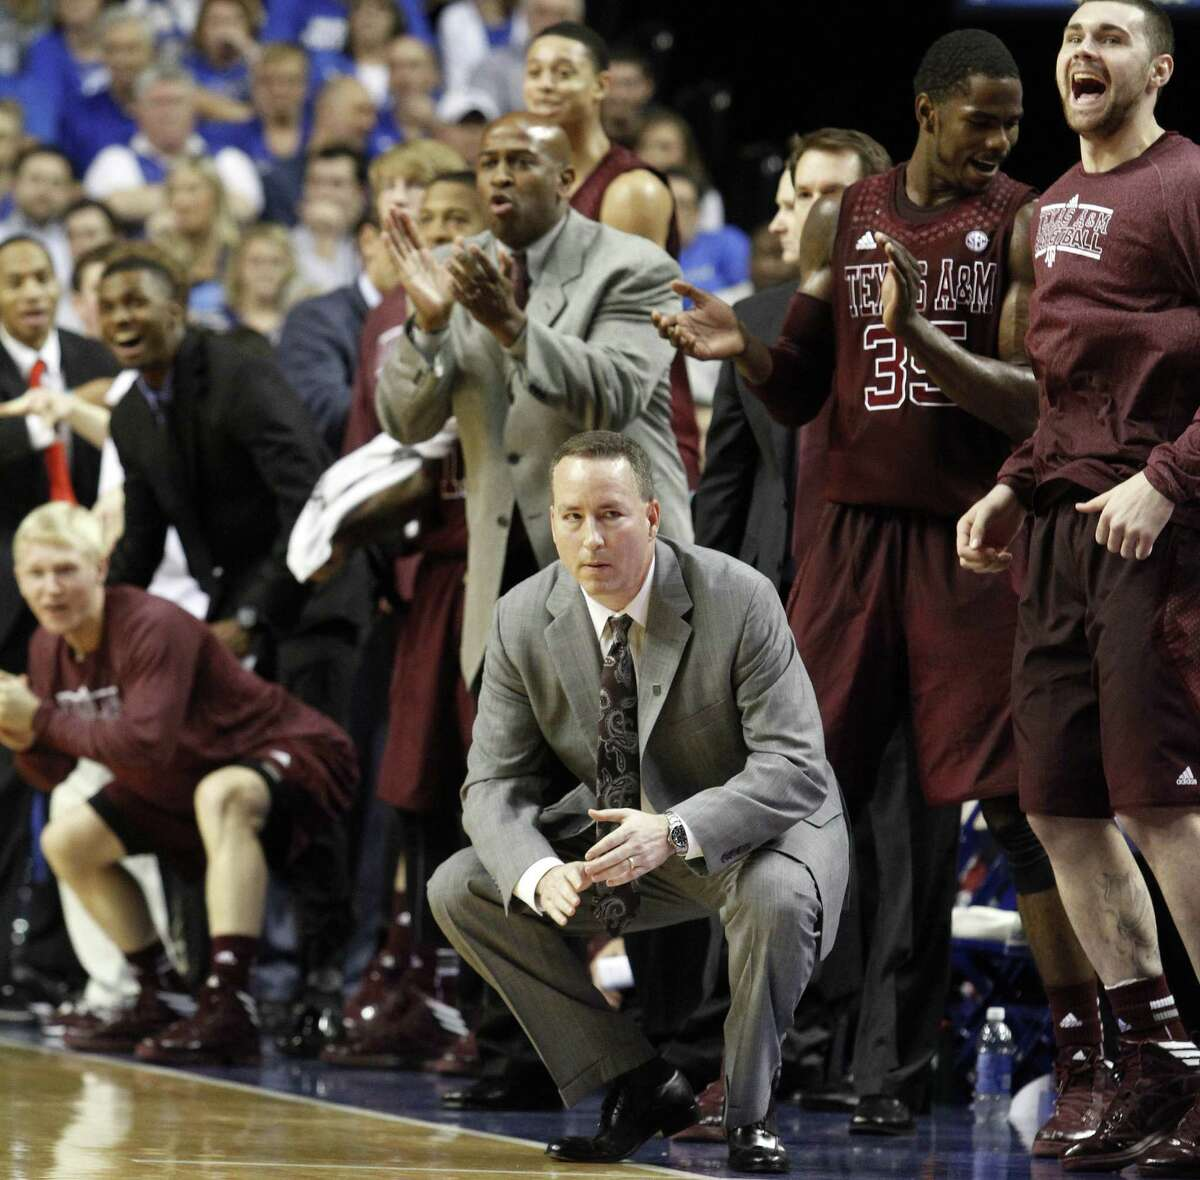 Texas A&M head coach Billy Kennedy, bottom center, watches the closing moments while the bench celebrates behind him late in the second half of an NCAA college basketball game against Kentucky at Rupp Arena in Lexington, Ky., Saturday, Jan. 12, 2013. Texas A&M won 83-71. (AP Photo/James Crisp)